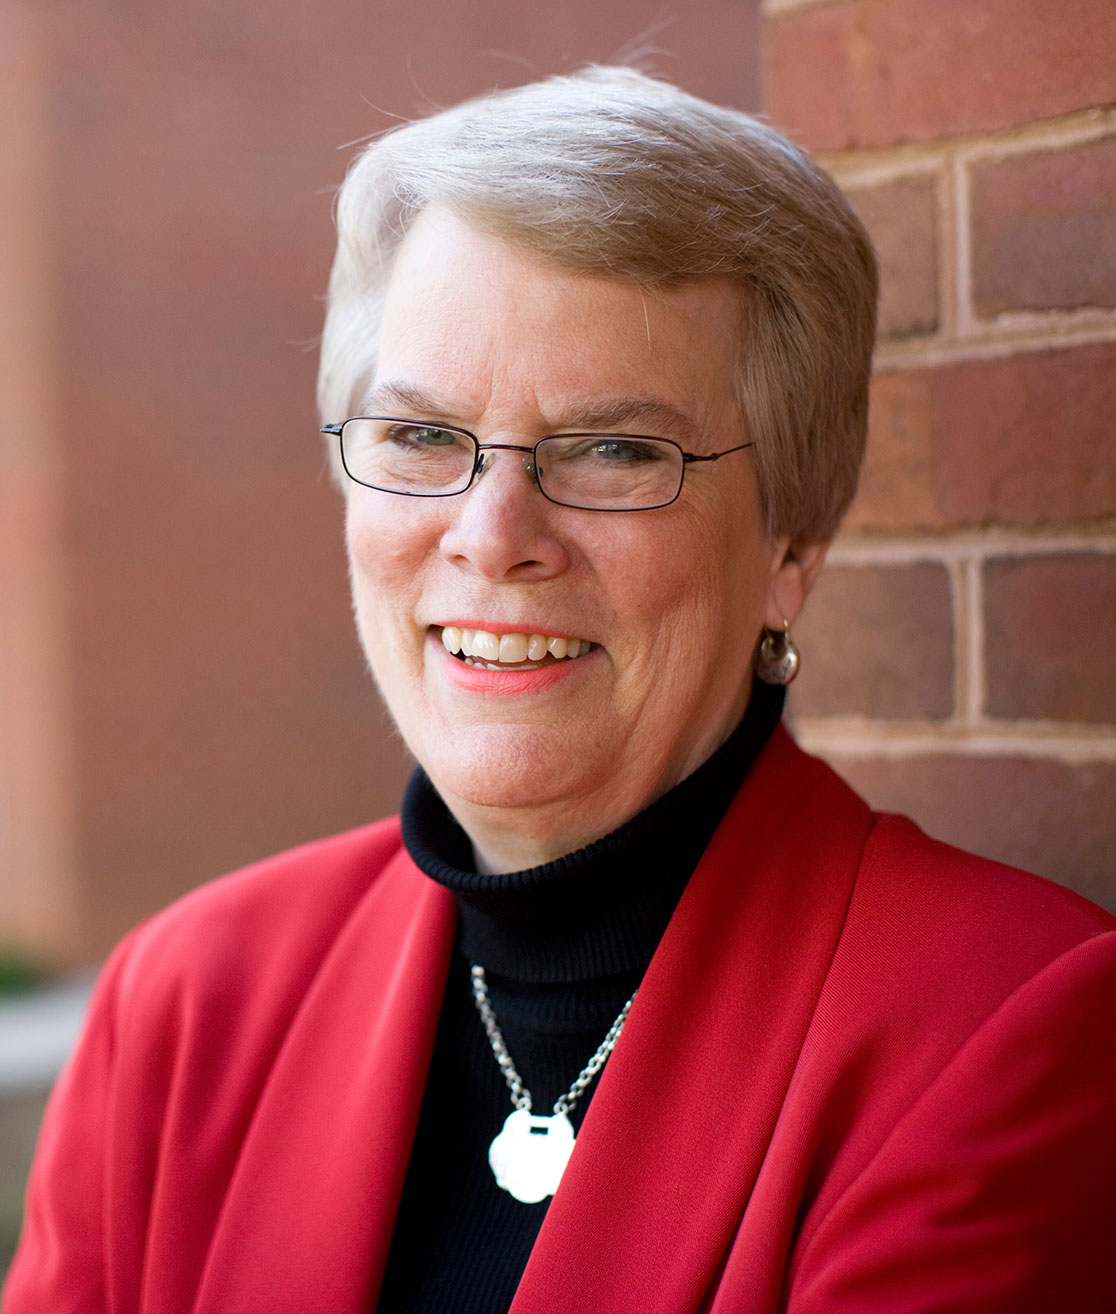 Carol Tomlinson tops all UVA faculty in her influence over national education policy.